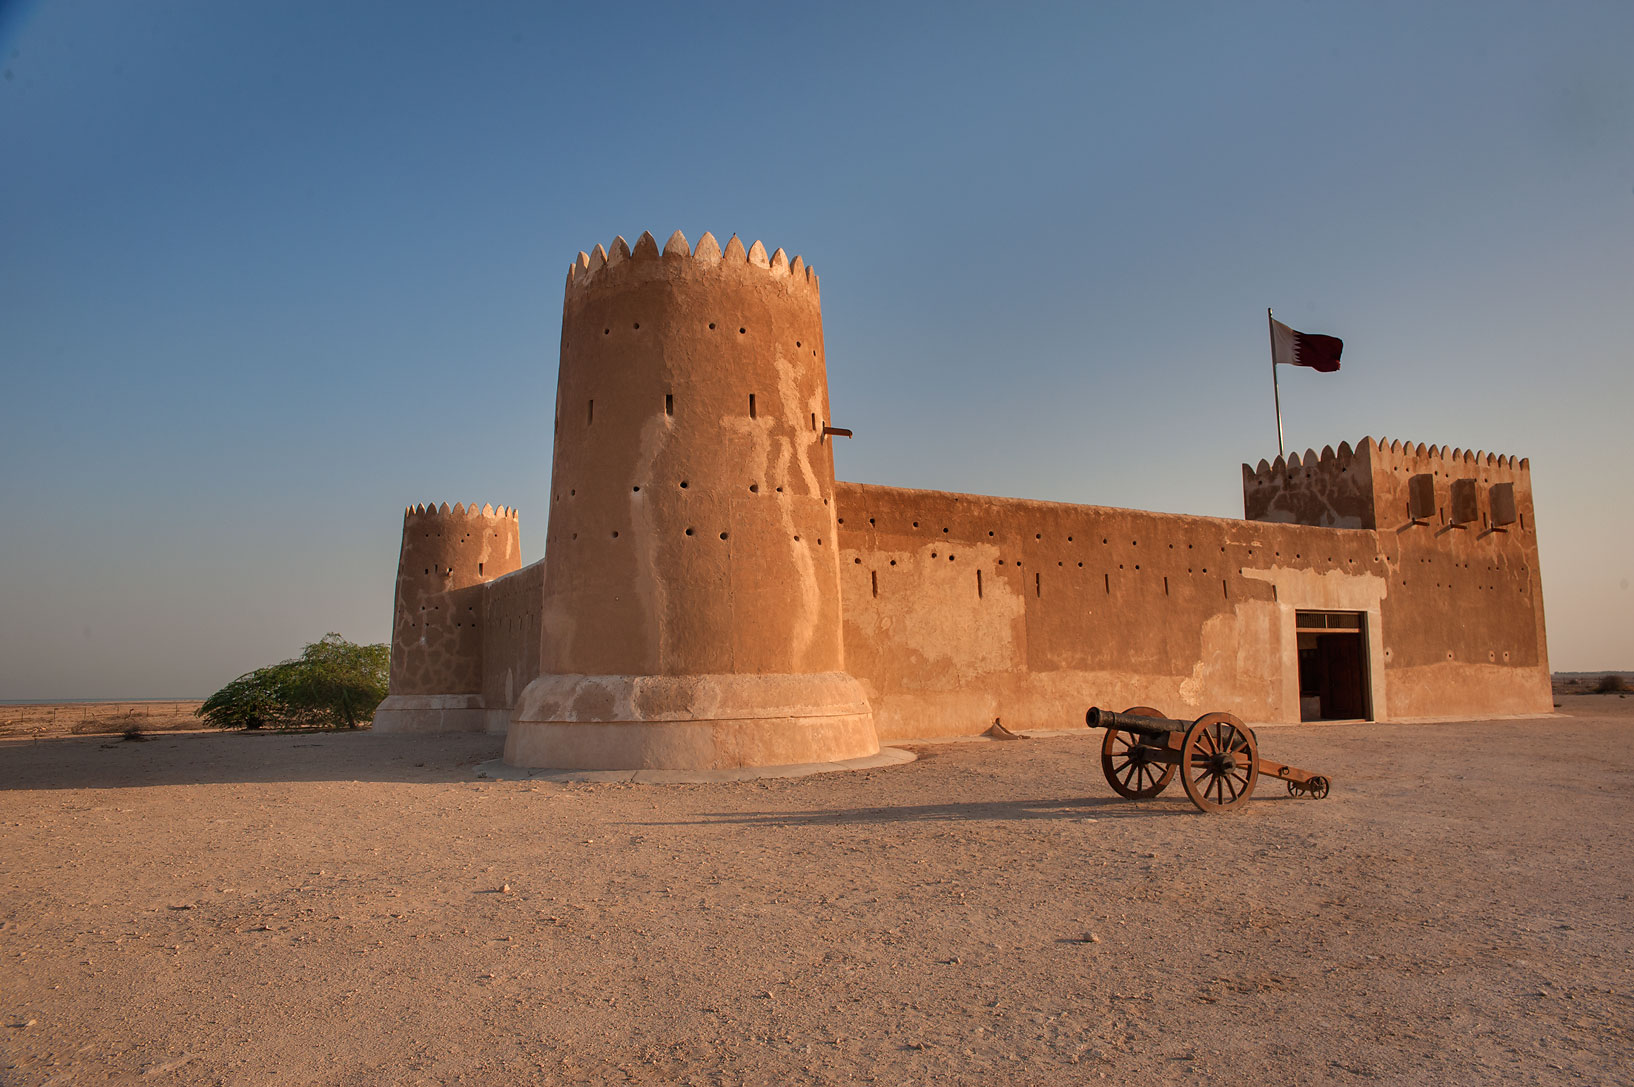 Doha - Zubara, Qatar  - Zubara Fort at sunrise. Northern Qatar